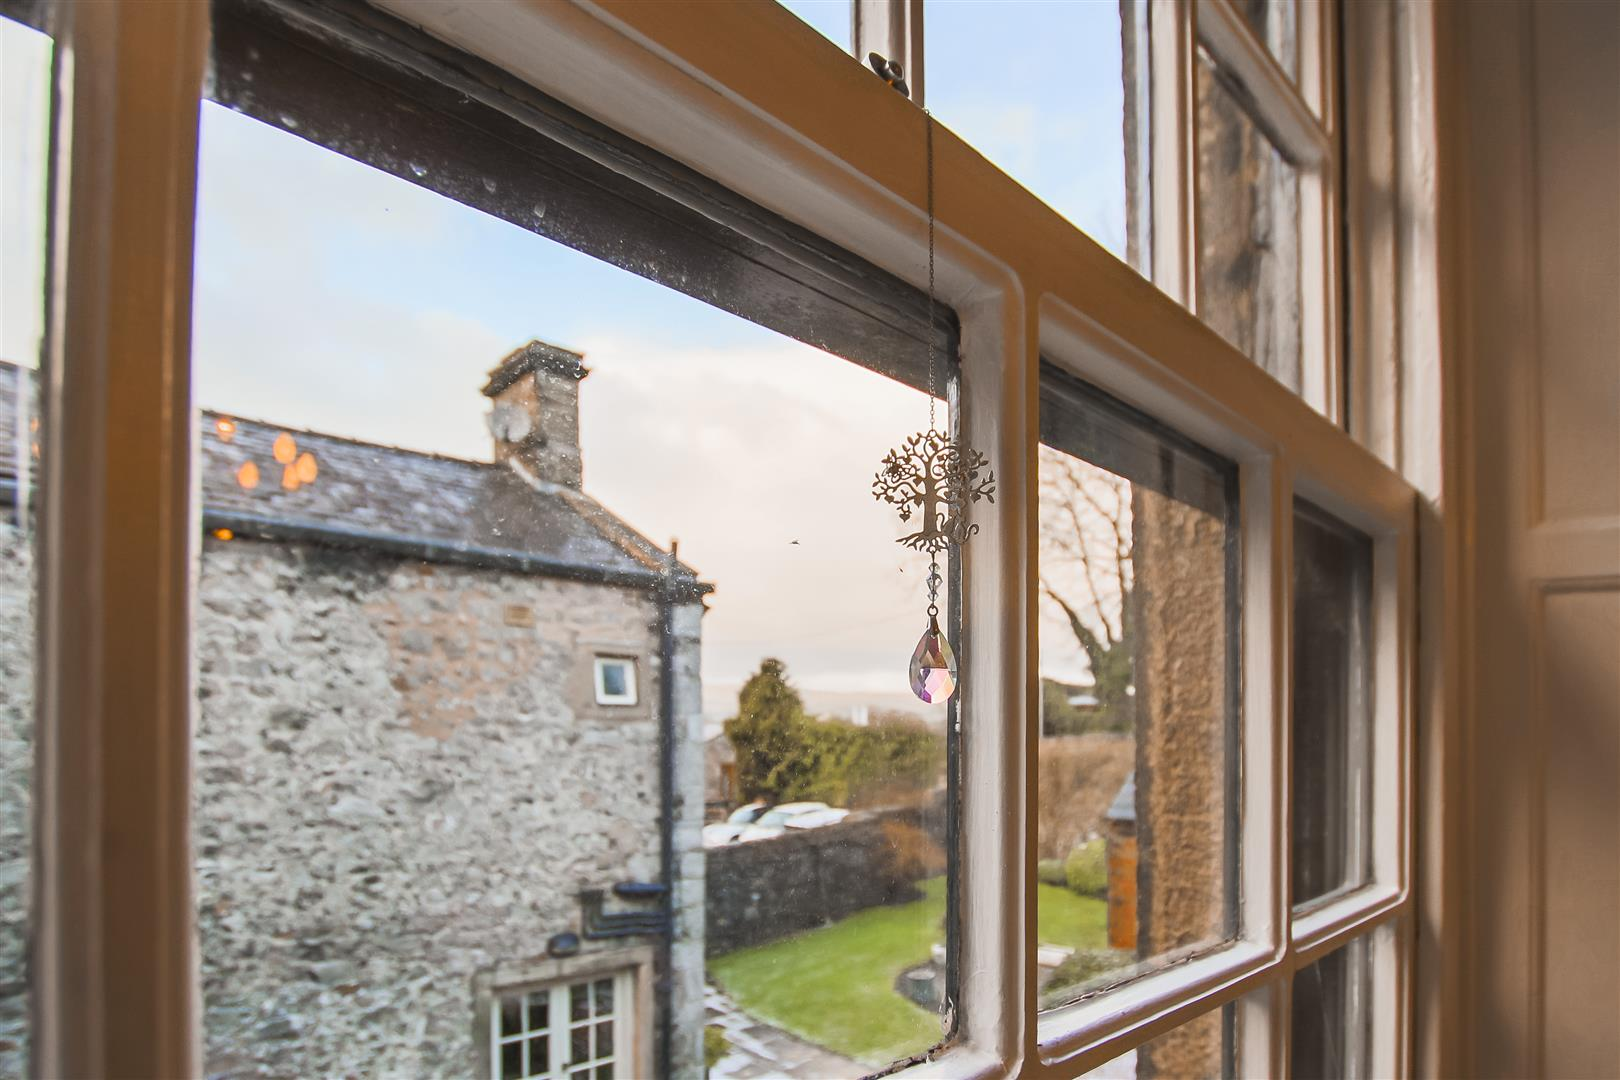 3 Bedroom Semi-detached House For Sale - Rear Views